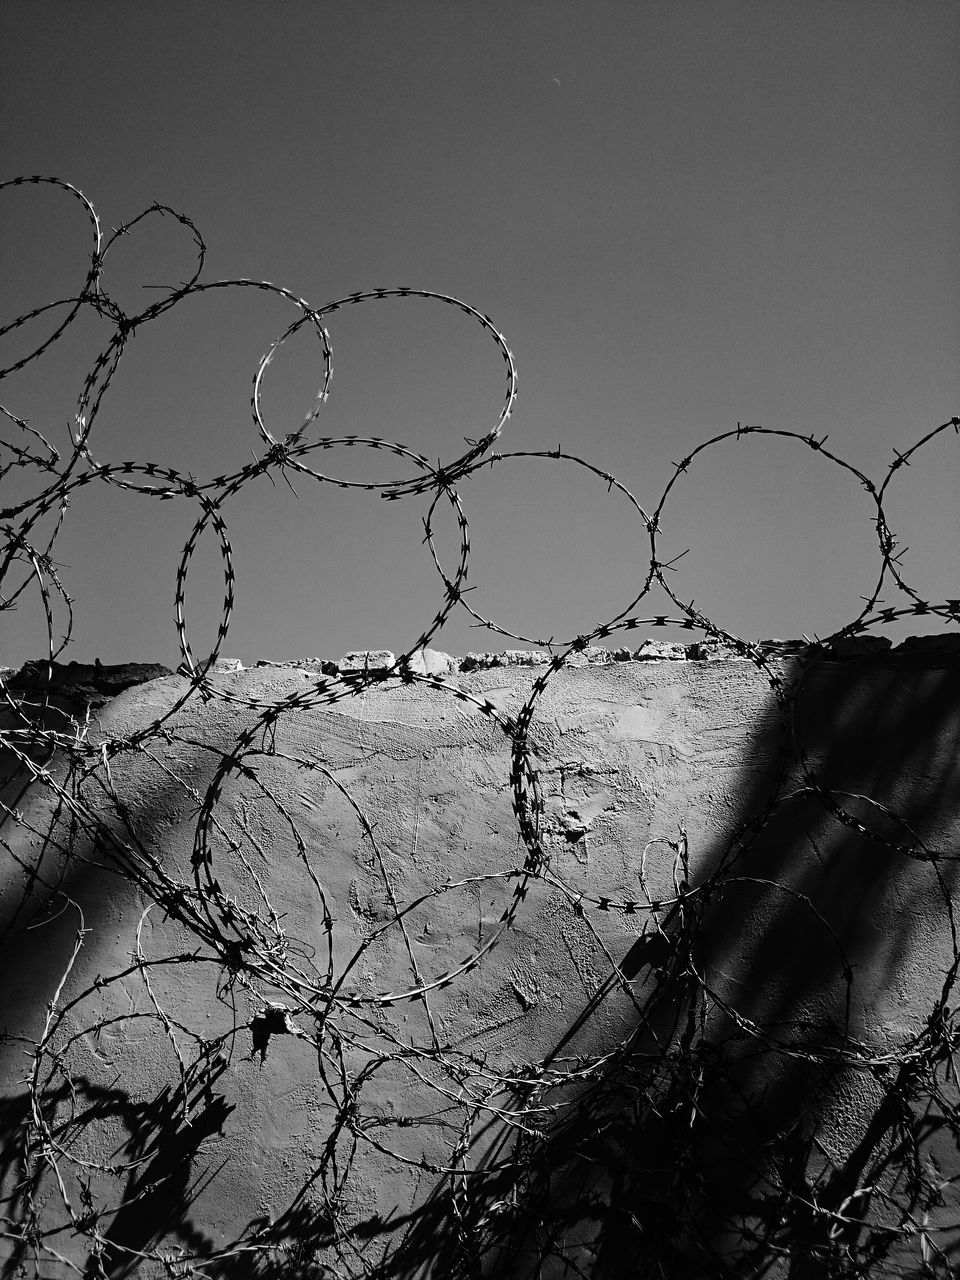 protection, safety, security, razor wire, barbed wire, outdoors, no people, day, sky, nature, clear sky